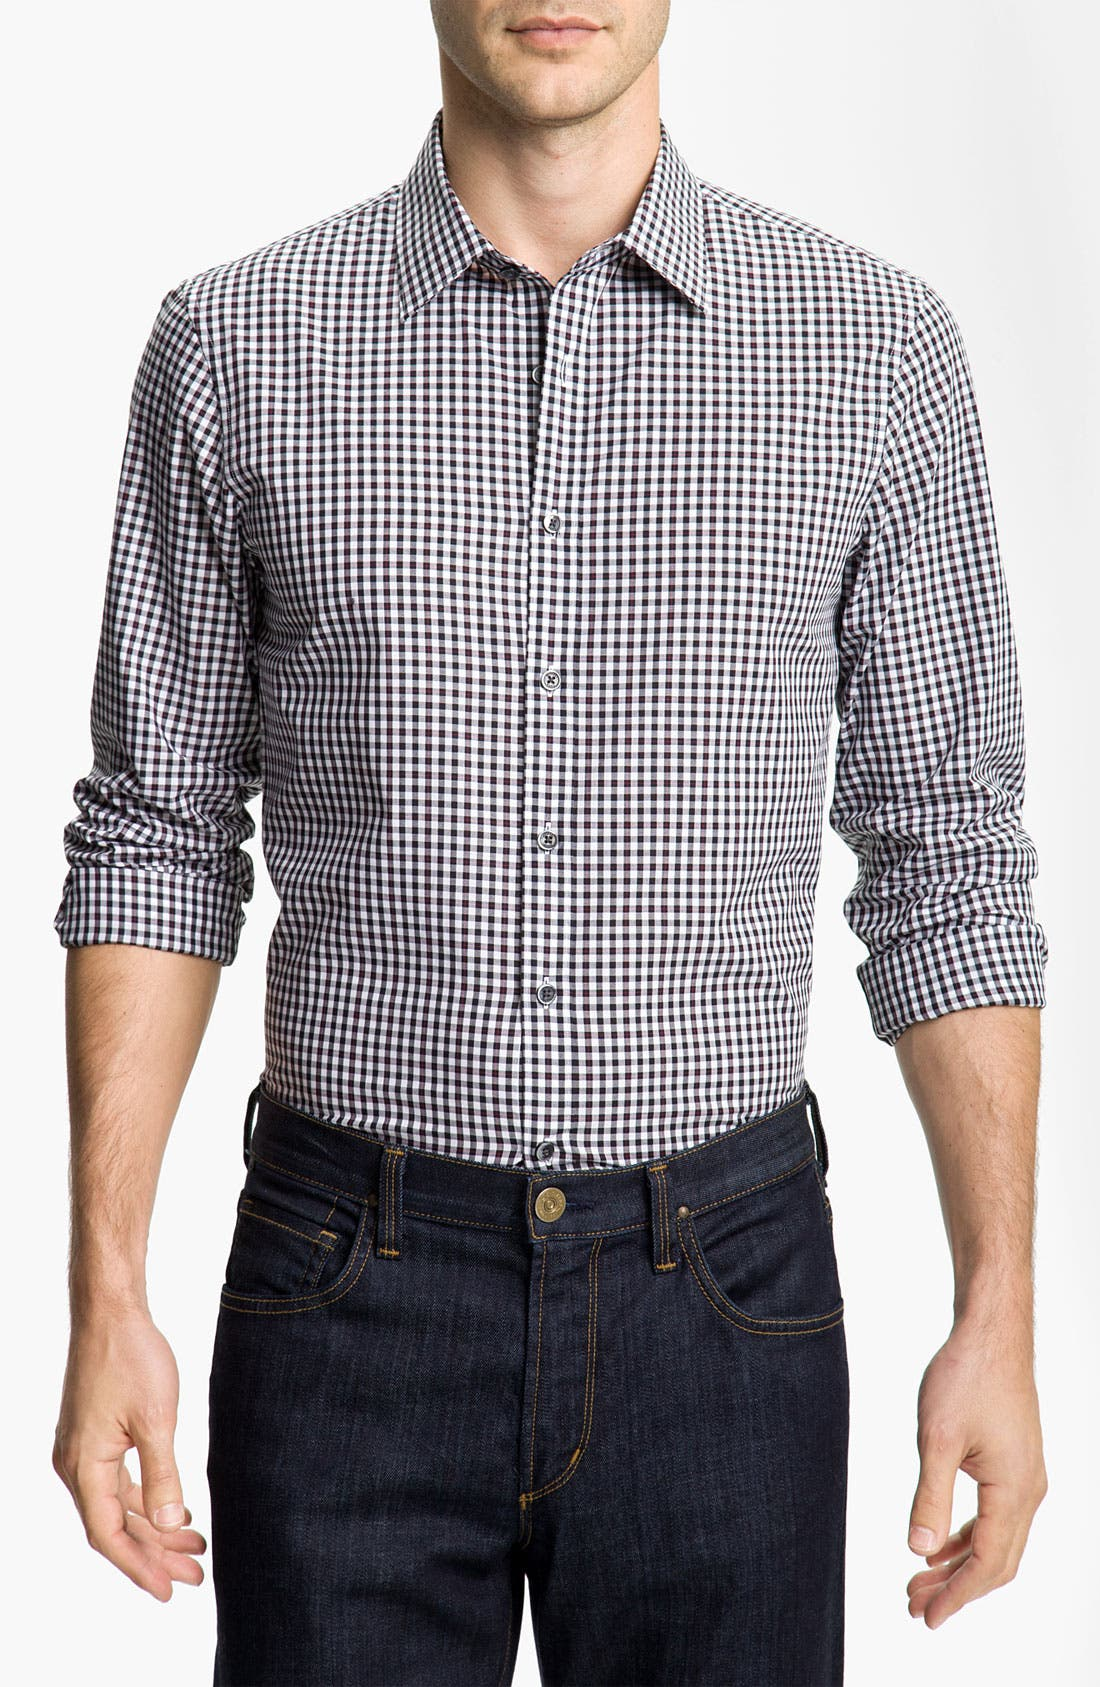 Alternate Image 1 Selected - Michael Kors 'Fairfax Check' Sport Shirt